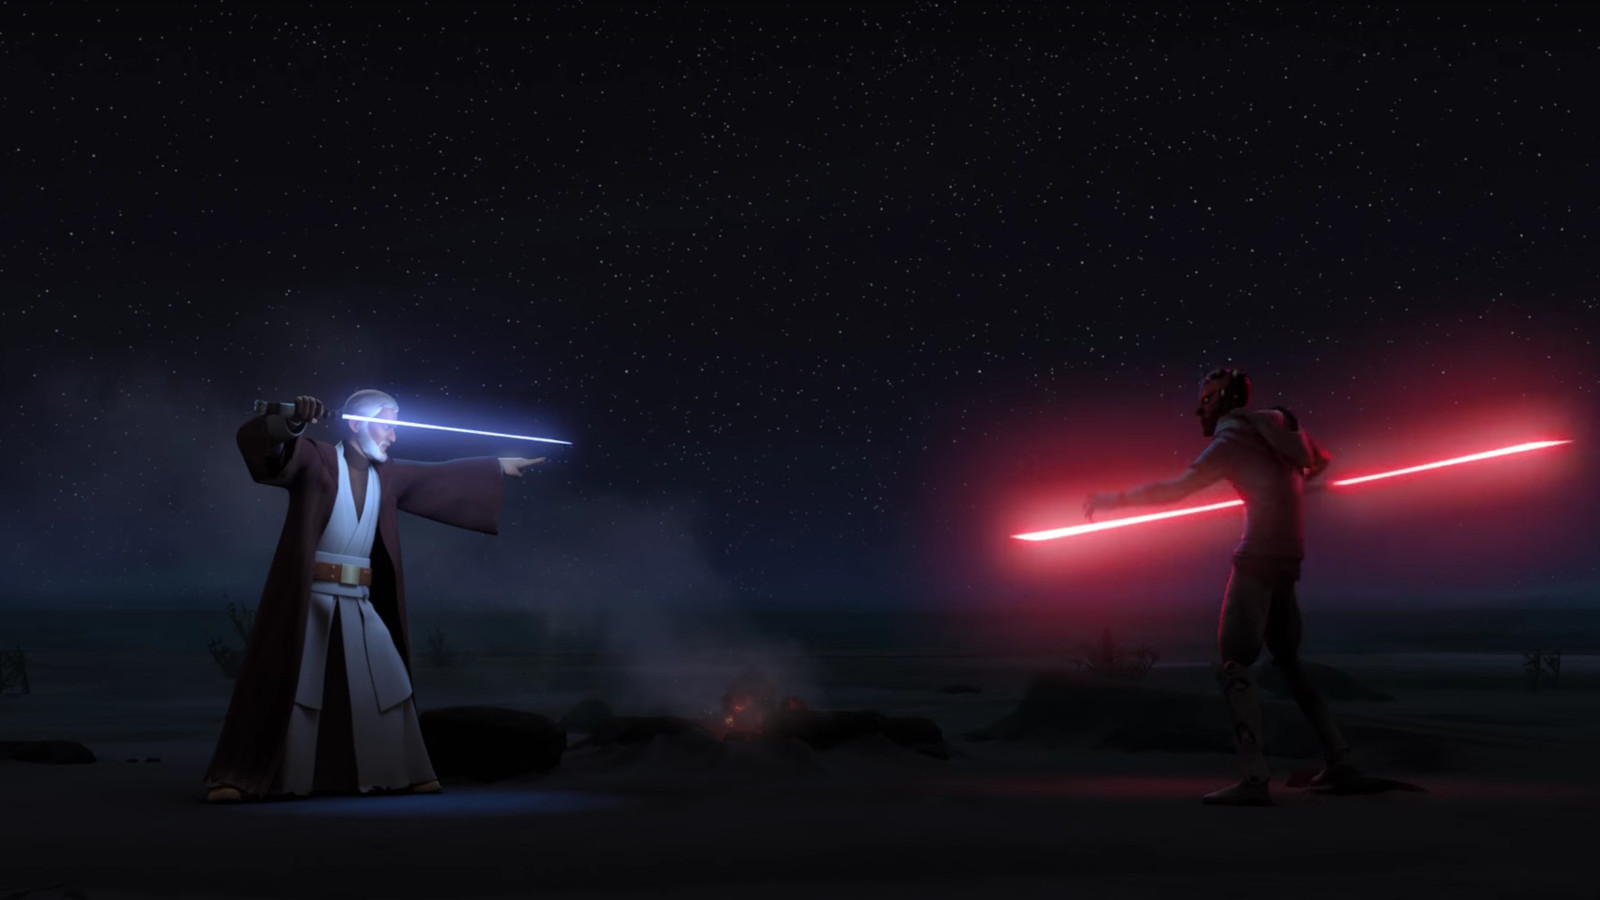 Star Wars Rebels Brought Back Darth Maul This Week For A Fitting Duel The Verge